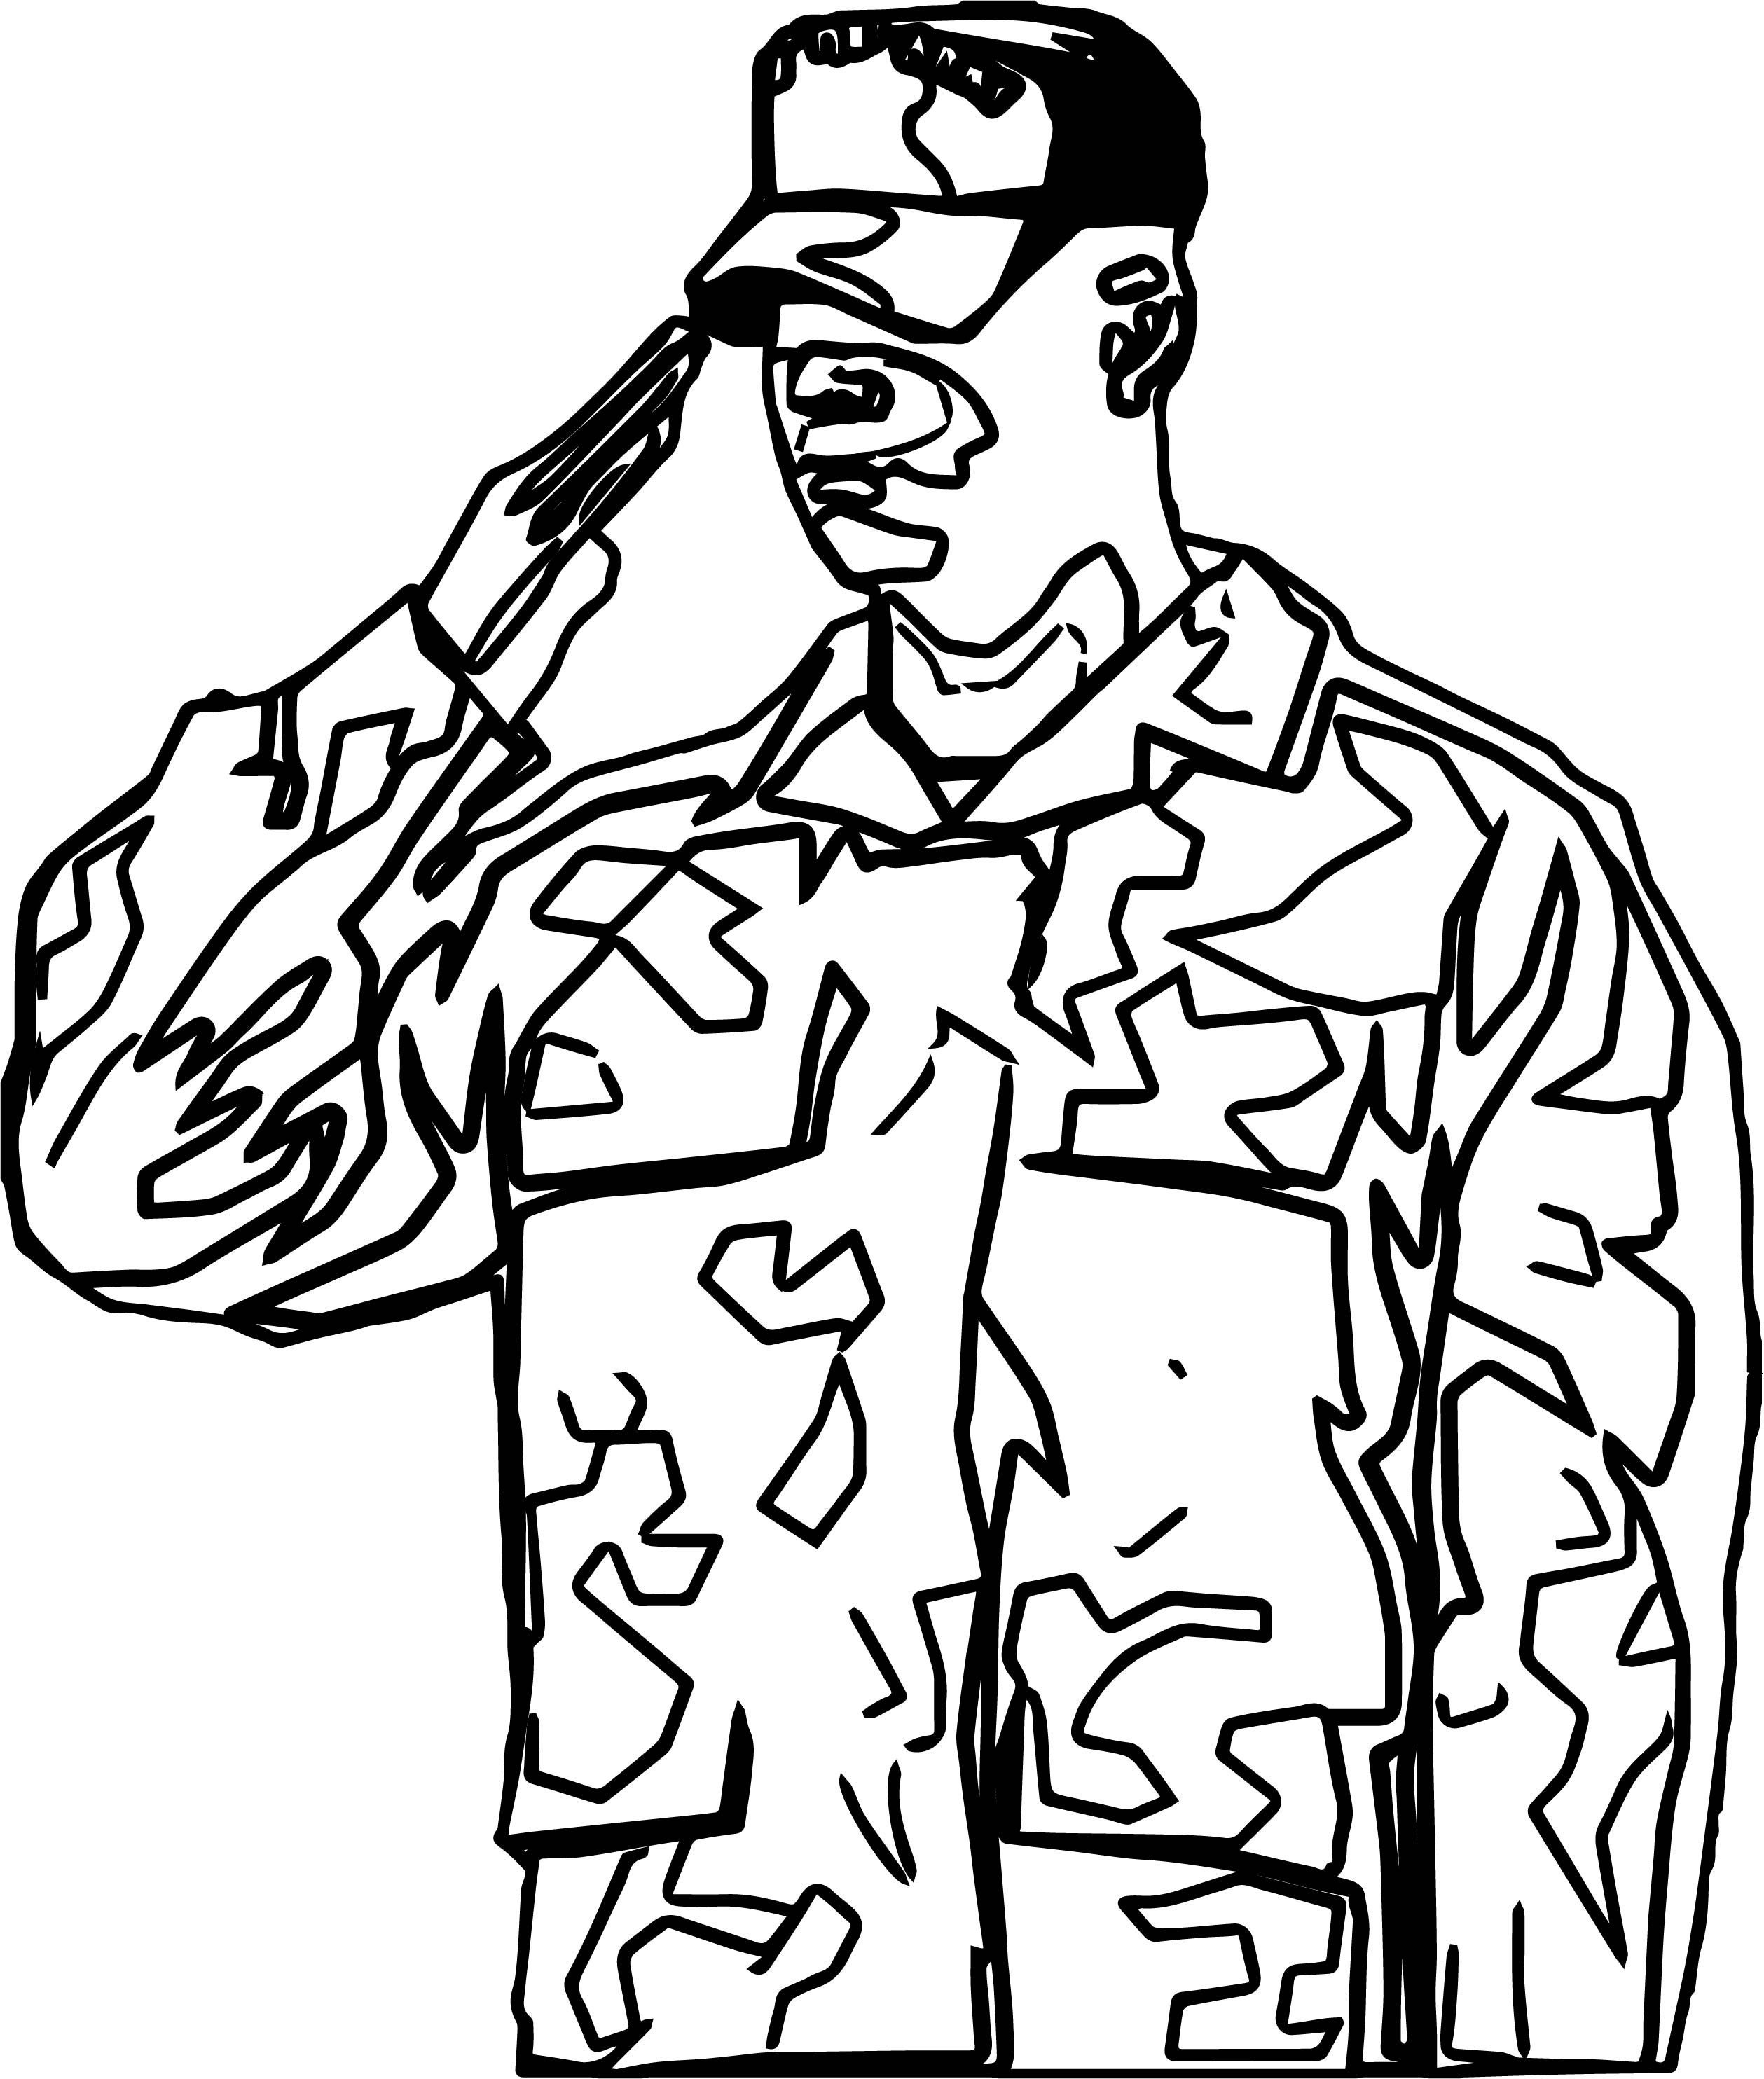 Soldier Salute Coloring Page Wecoloringpage Com